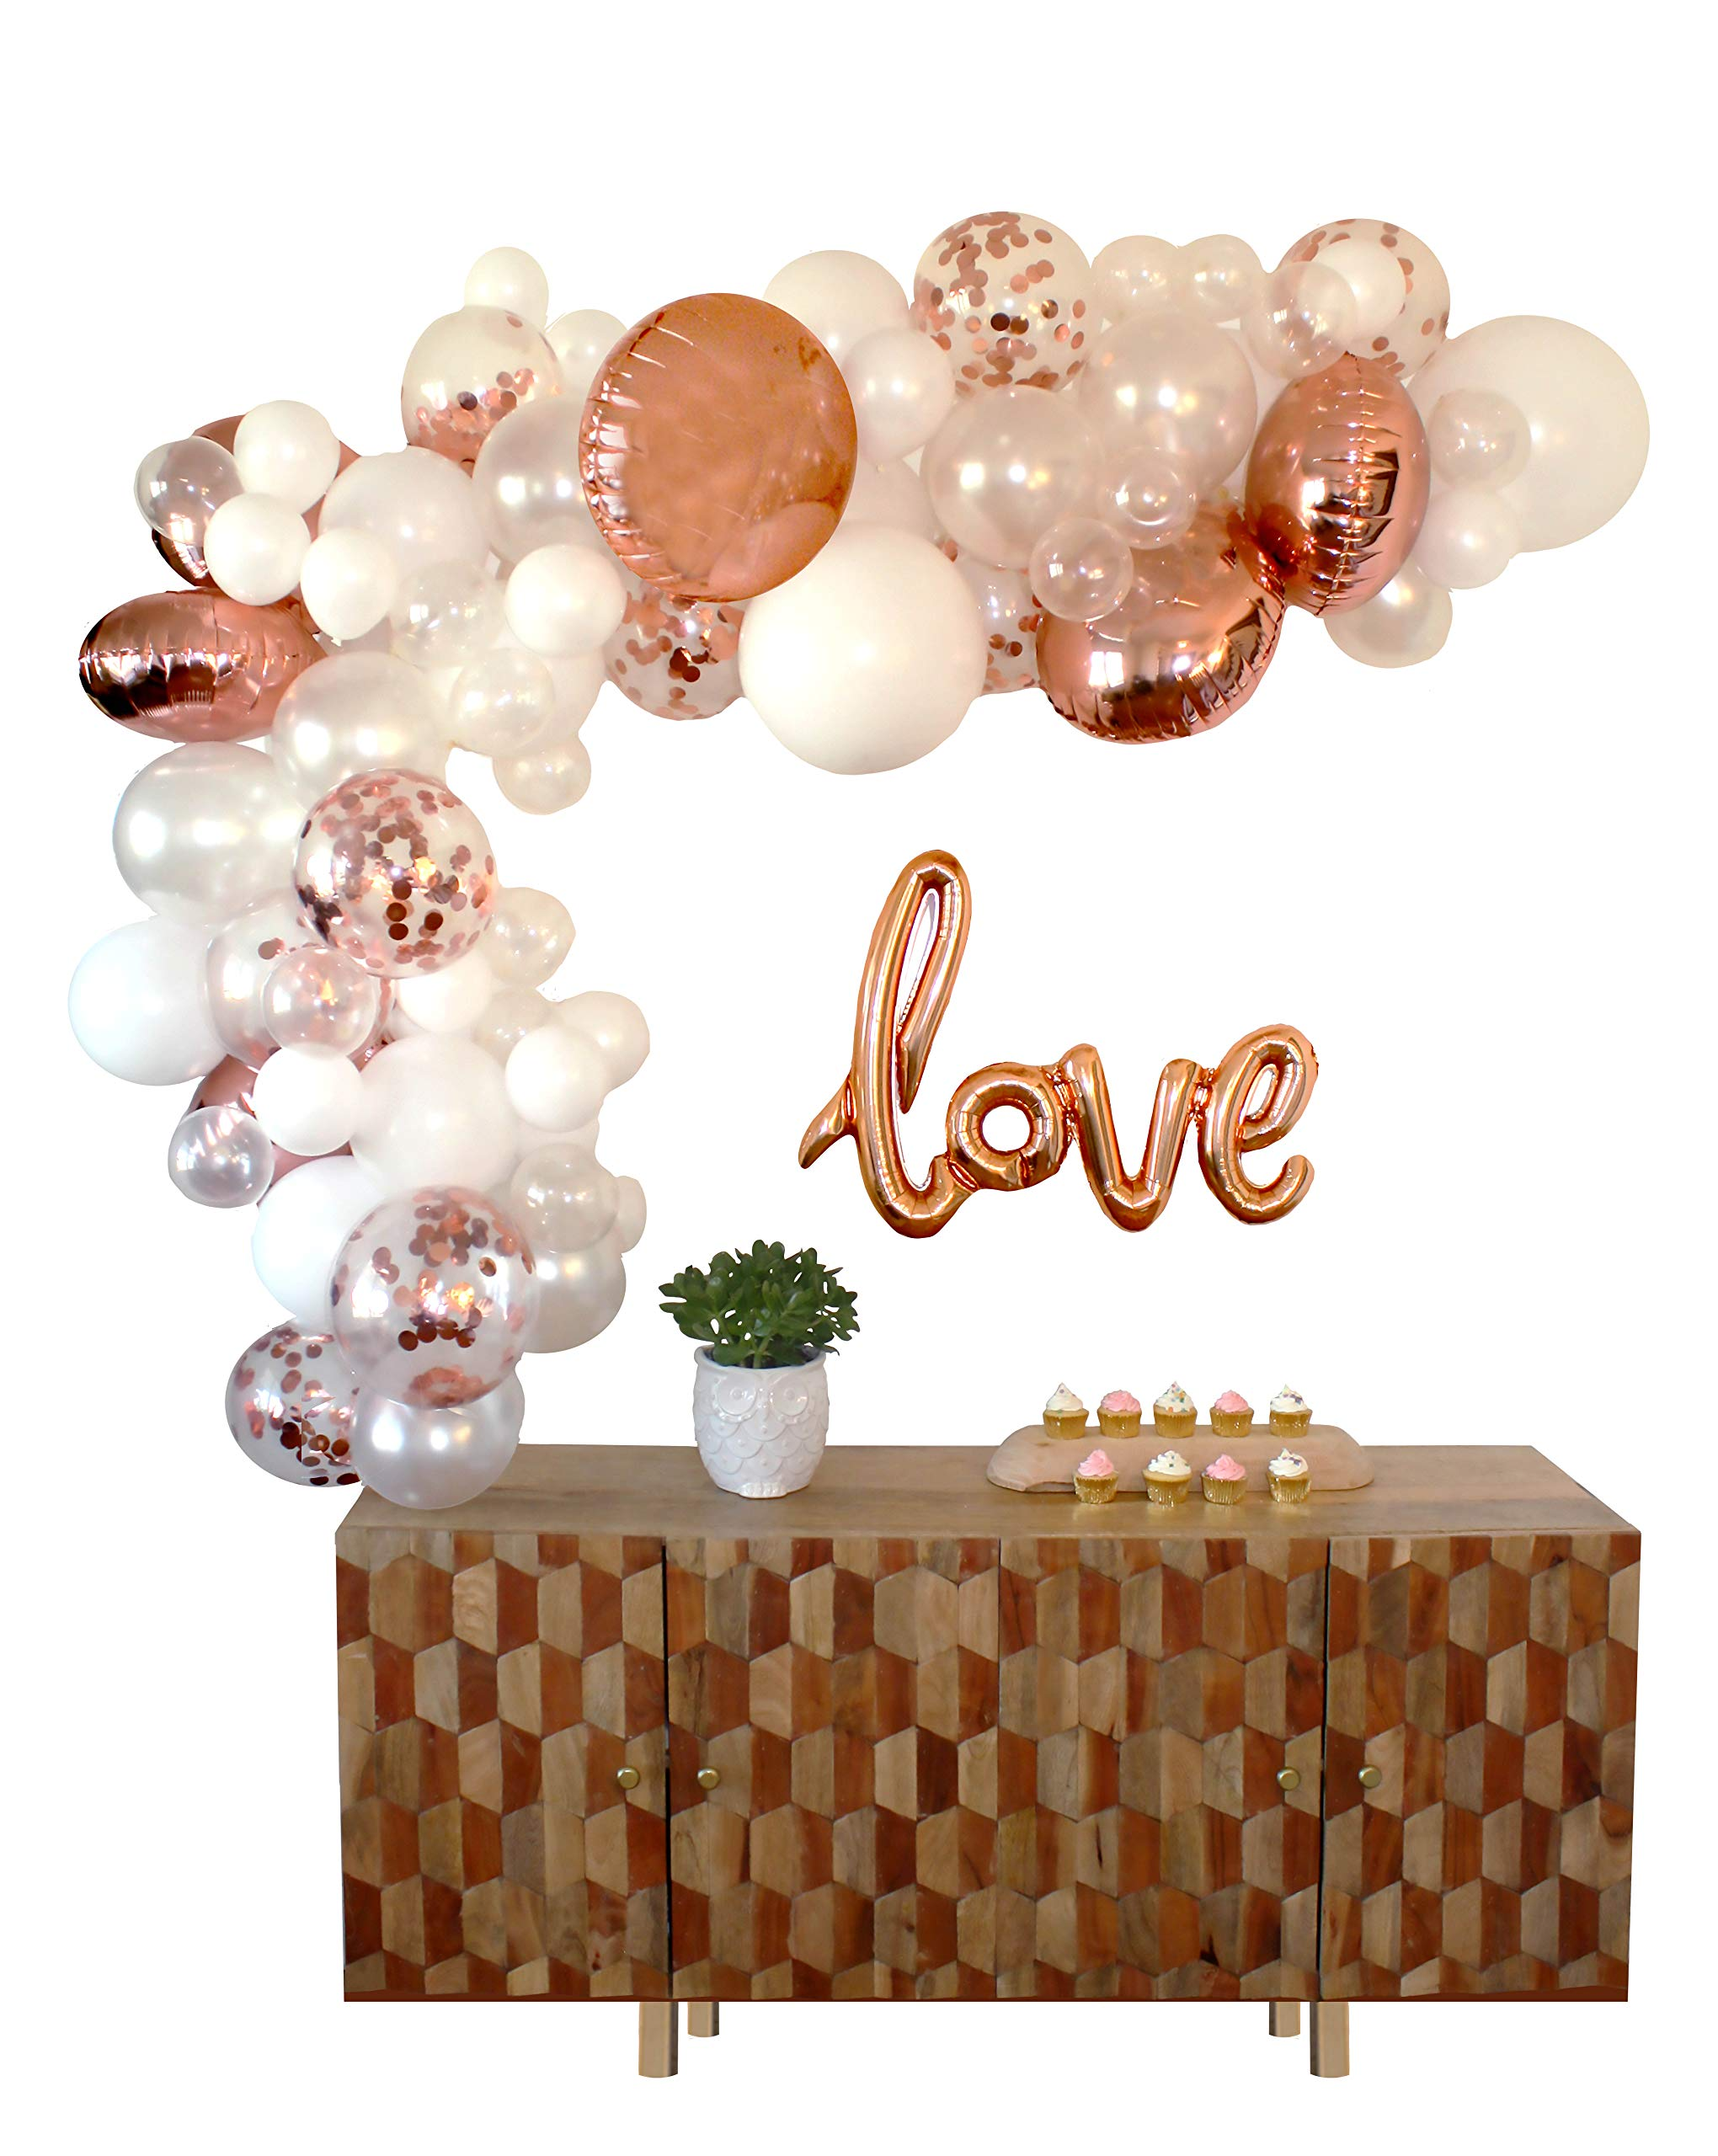 Balloon Arch & Garland Kit | 80 Rose Gold, Confetti, White & Clear Balloons | Love Balloon | Hand Pump | Glue Dots | 16' Tape | Bridal, Baby Shower, Birthday, Bachelorette, Wedding Party Decorations